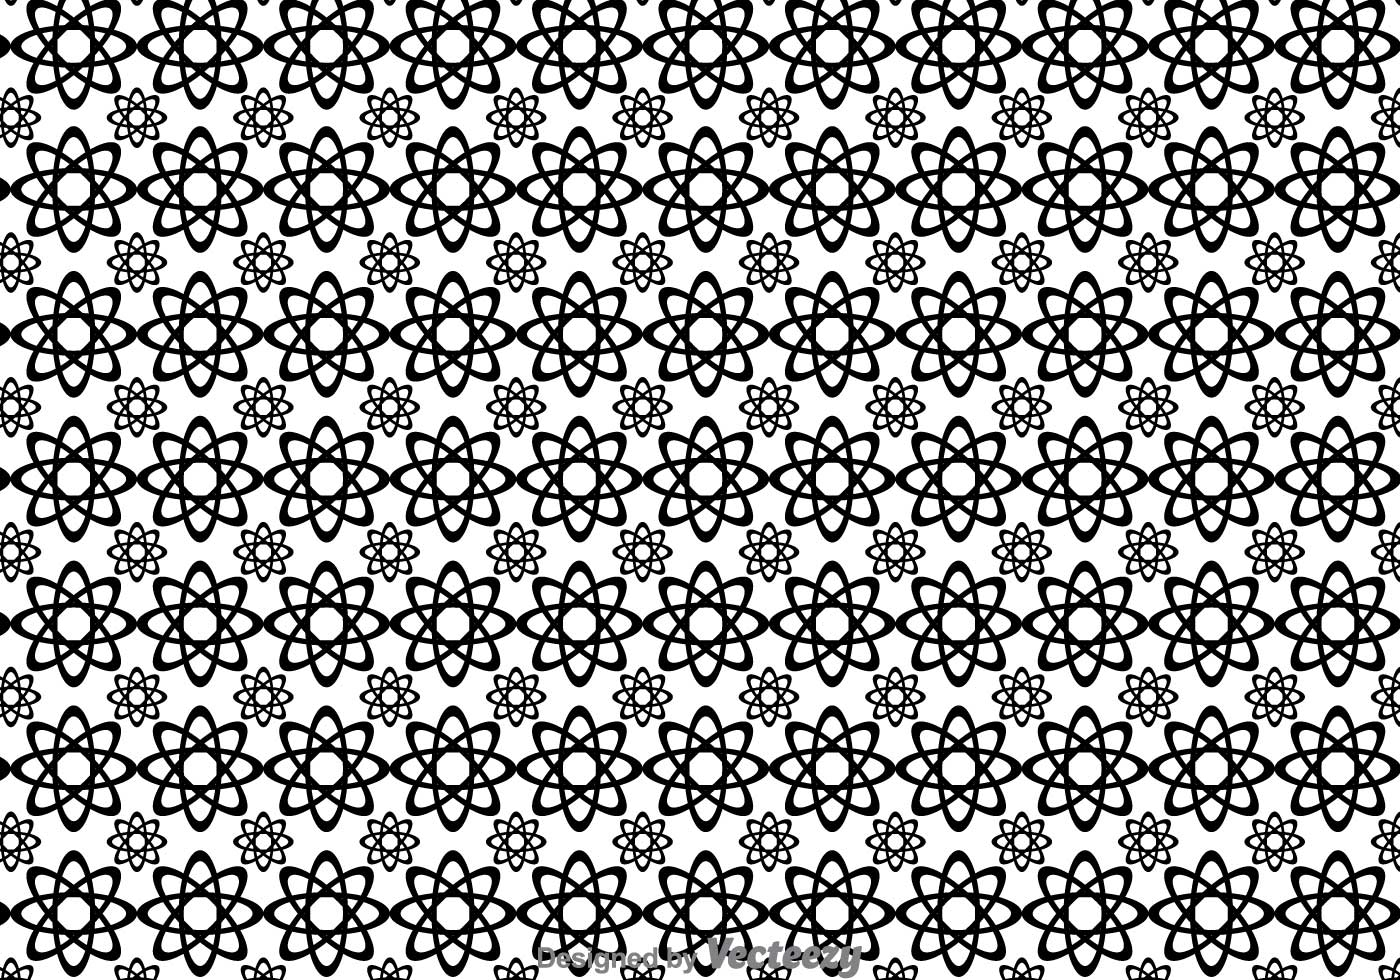 Black And White Flowers Shape Pattern Download Free Vectors Clipart Graphics Vector Art